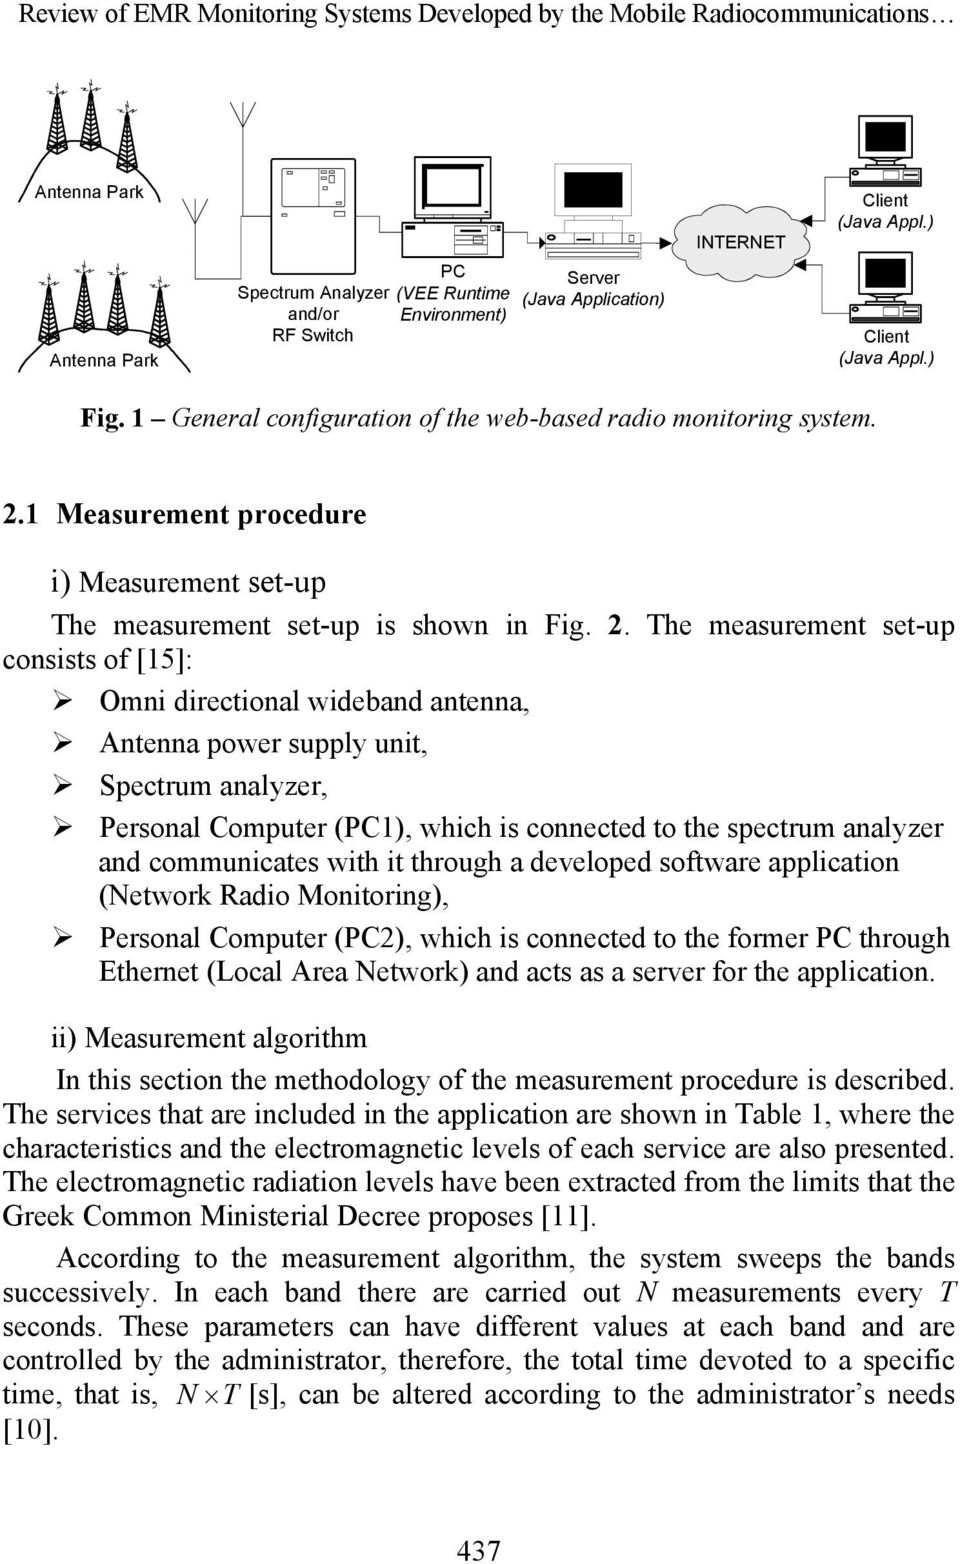 1 Measurement procedure i) Measurement set-up The measurement set-up is shown in Fig. 2.